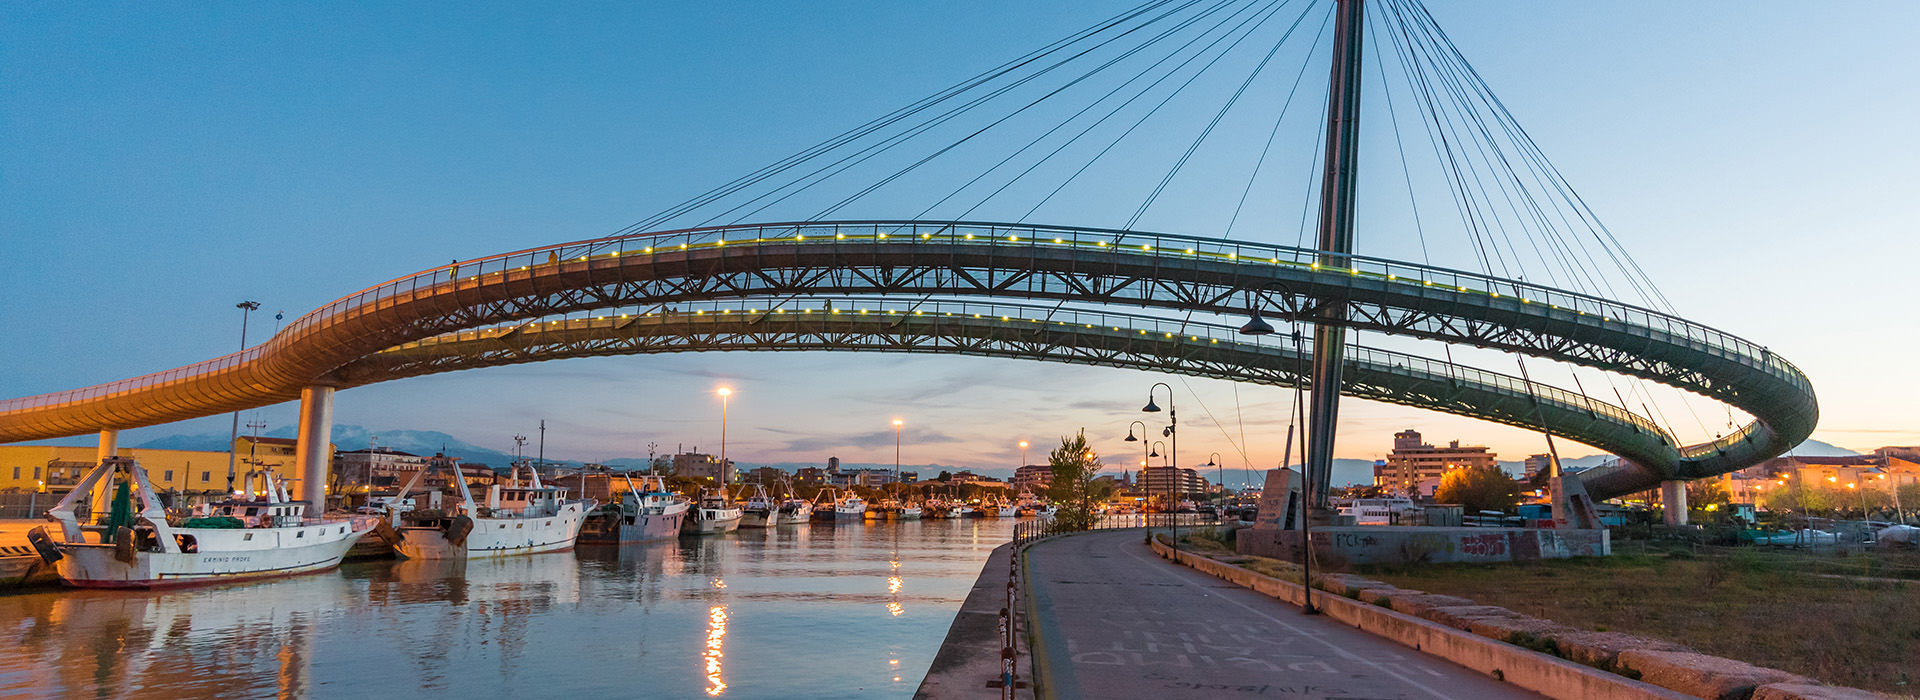 Pescara, Italy - 7 April 2017 - Urban landscape with the 'Ponte del Mare' monumental bridge at the dusk, in the canal and port of Pescara city, Abruzzo region